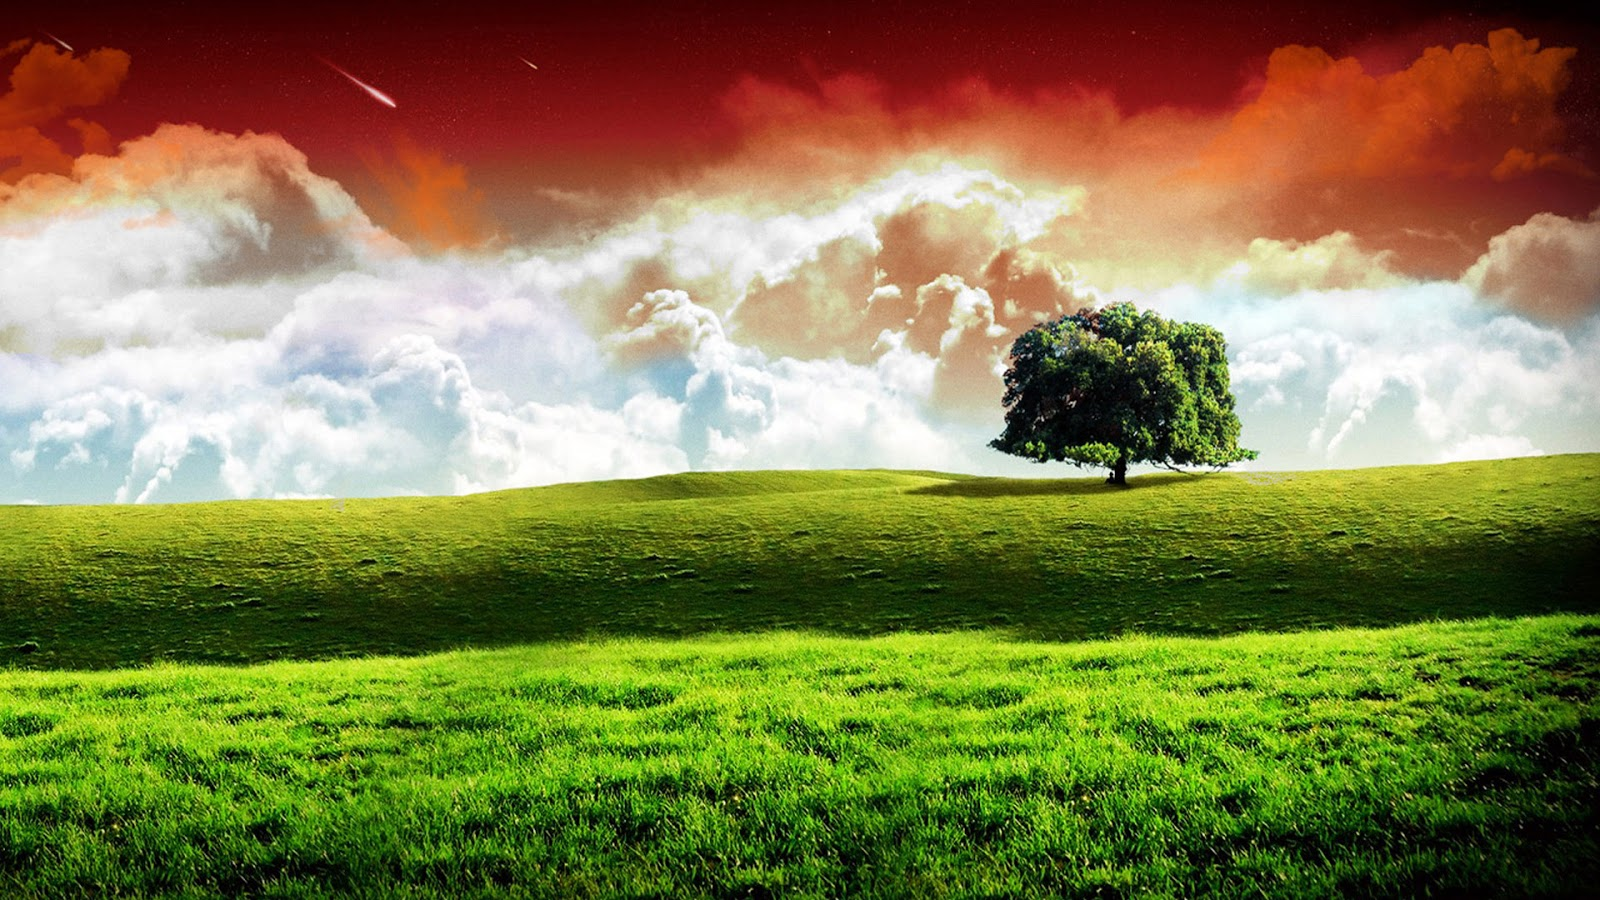 Indian Republic Day Wallpapers 1080p | HD Wallpapers (High Definition) | Free Background